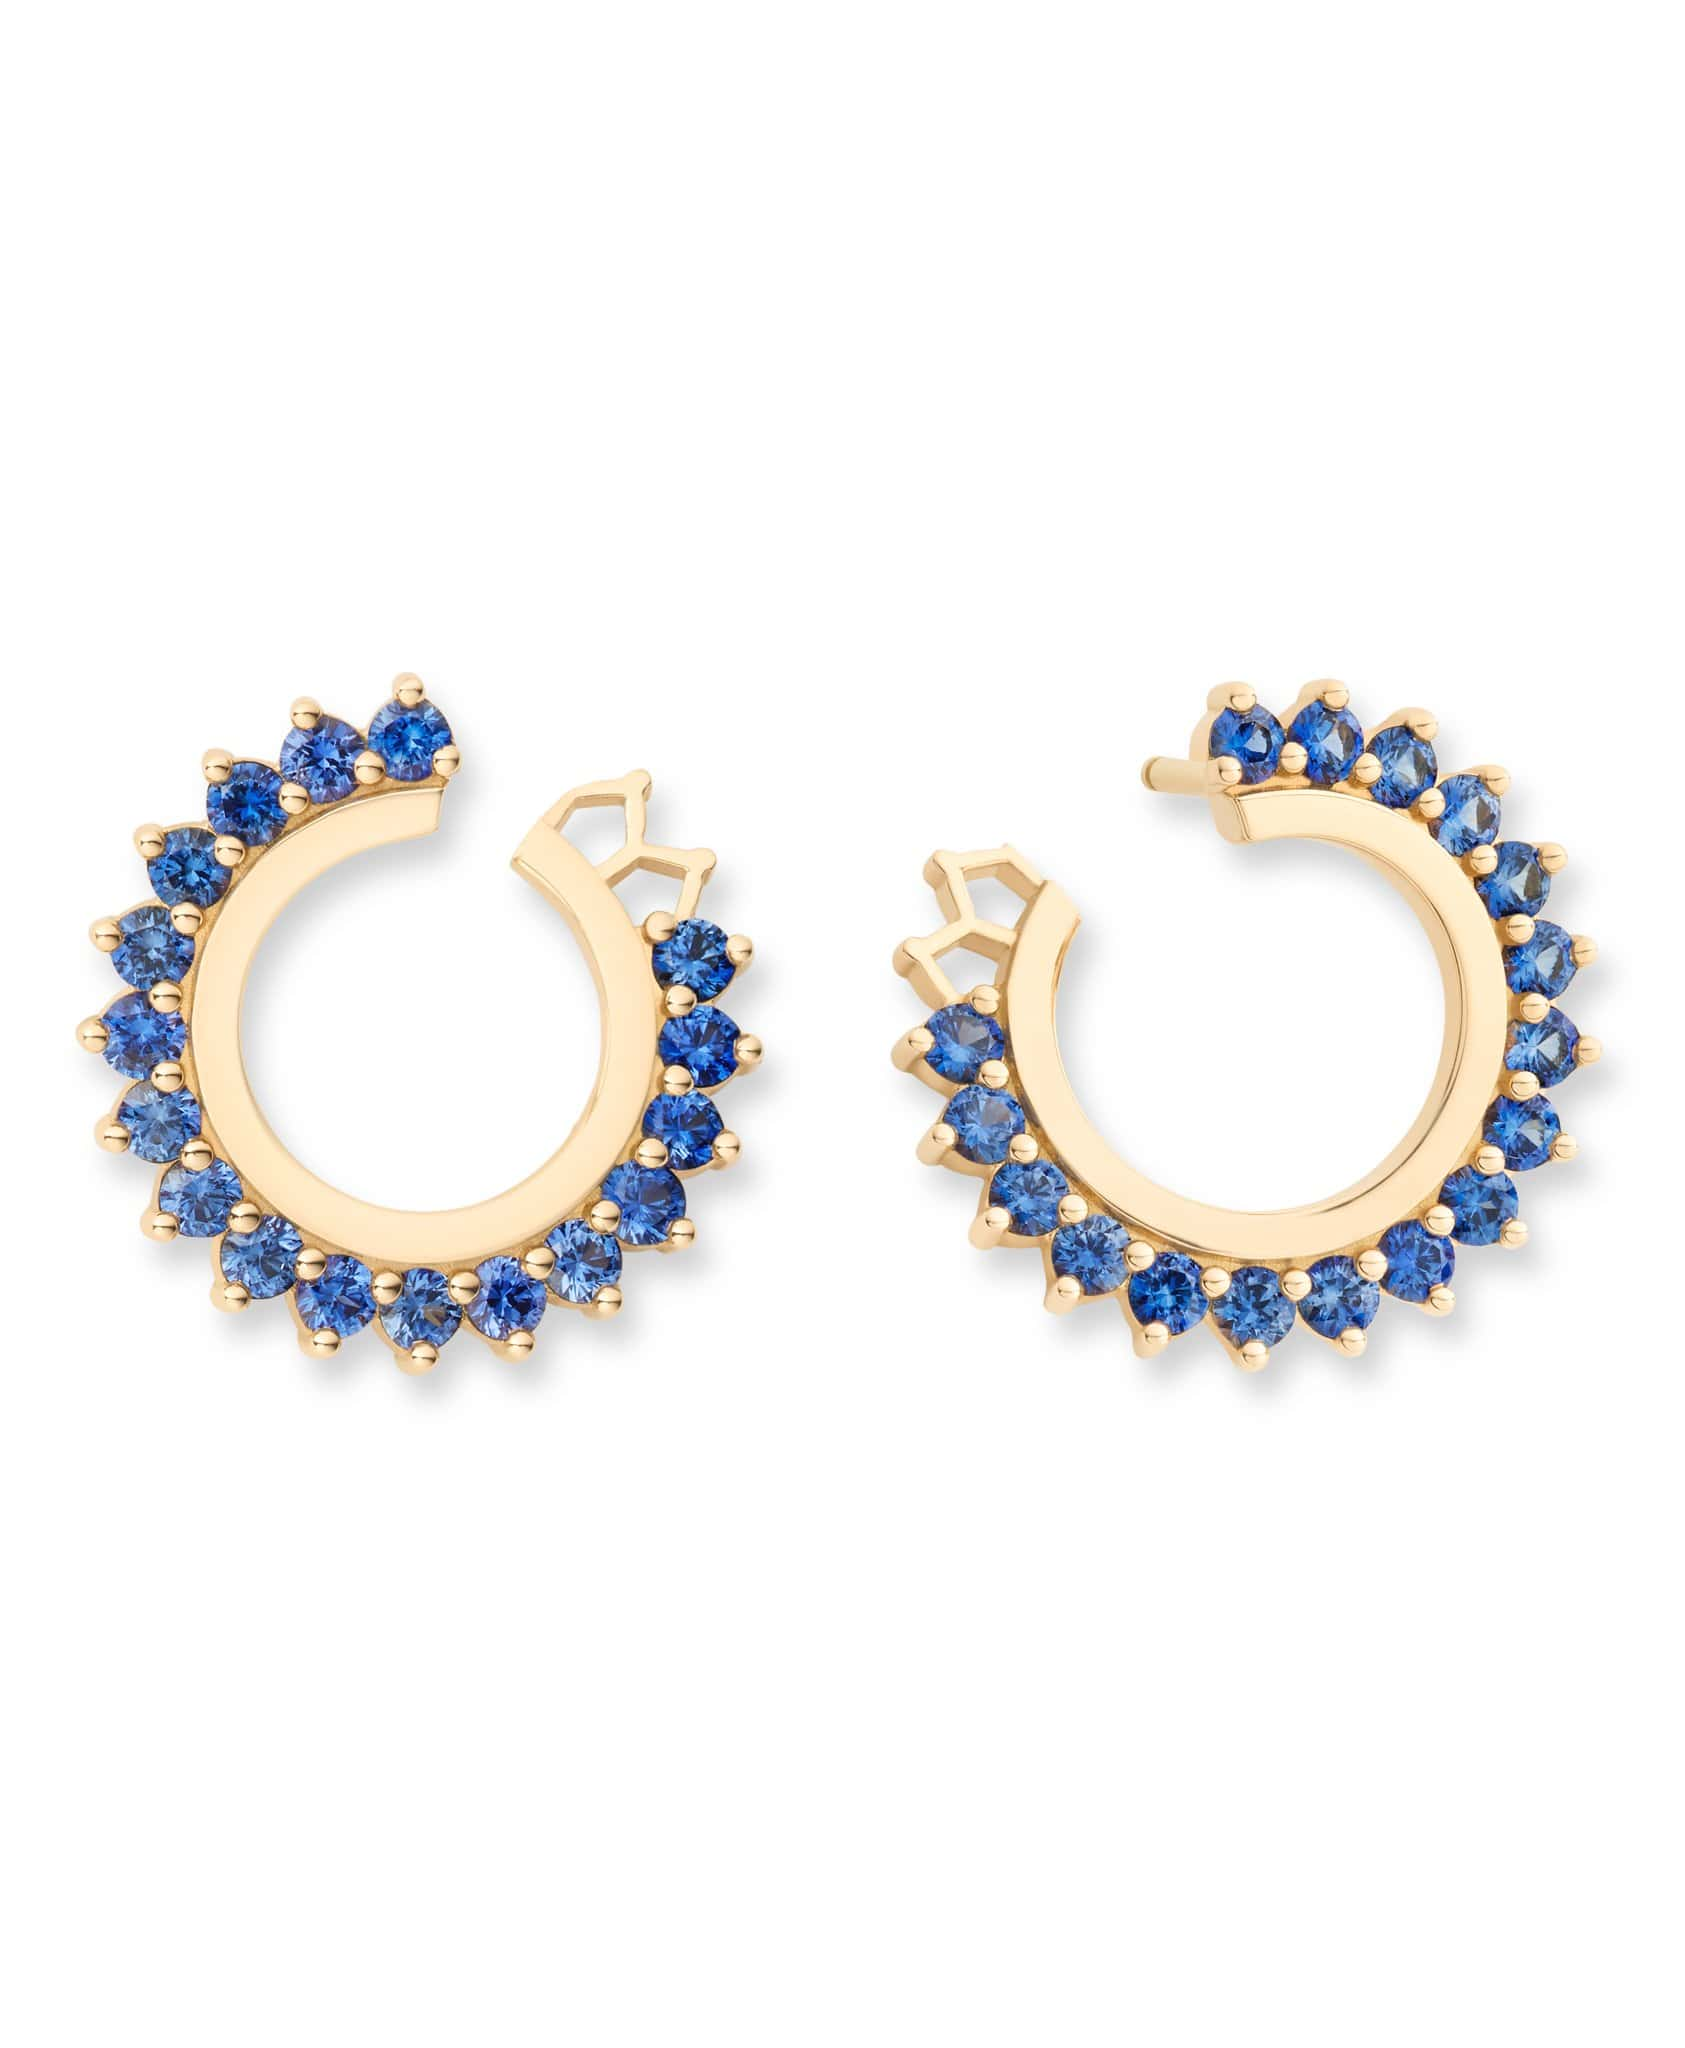 Blue Sapphire Earrings: Discover Luxury Fine Jewelry | Nouvel Heritage